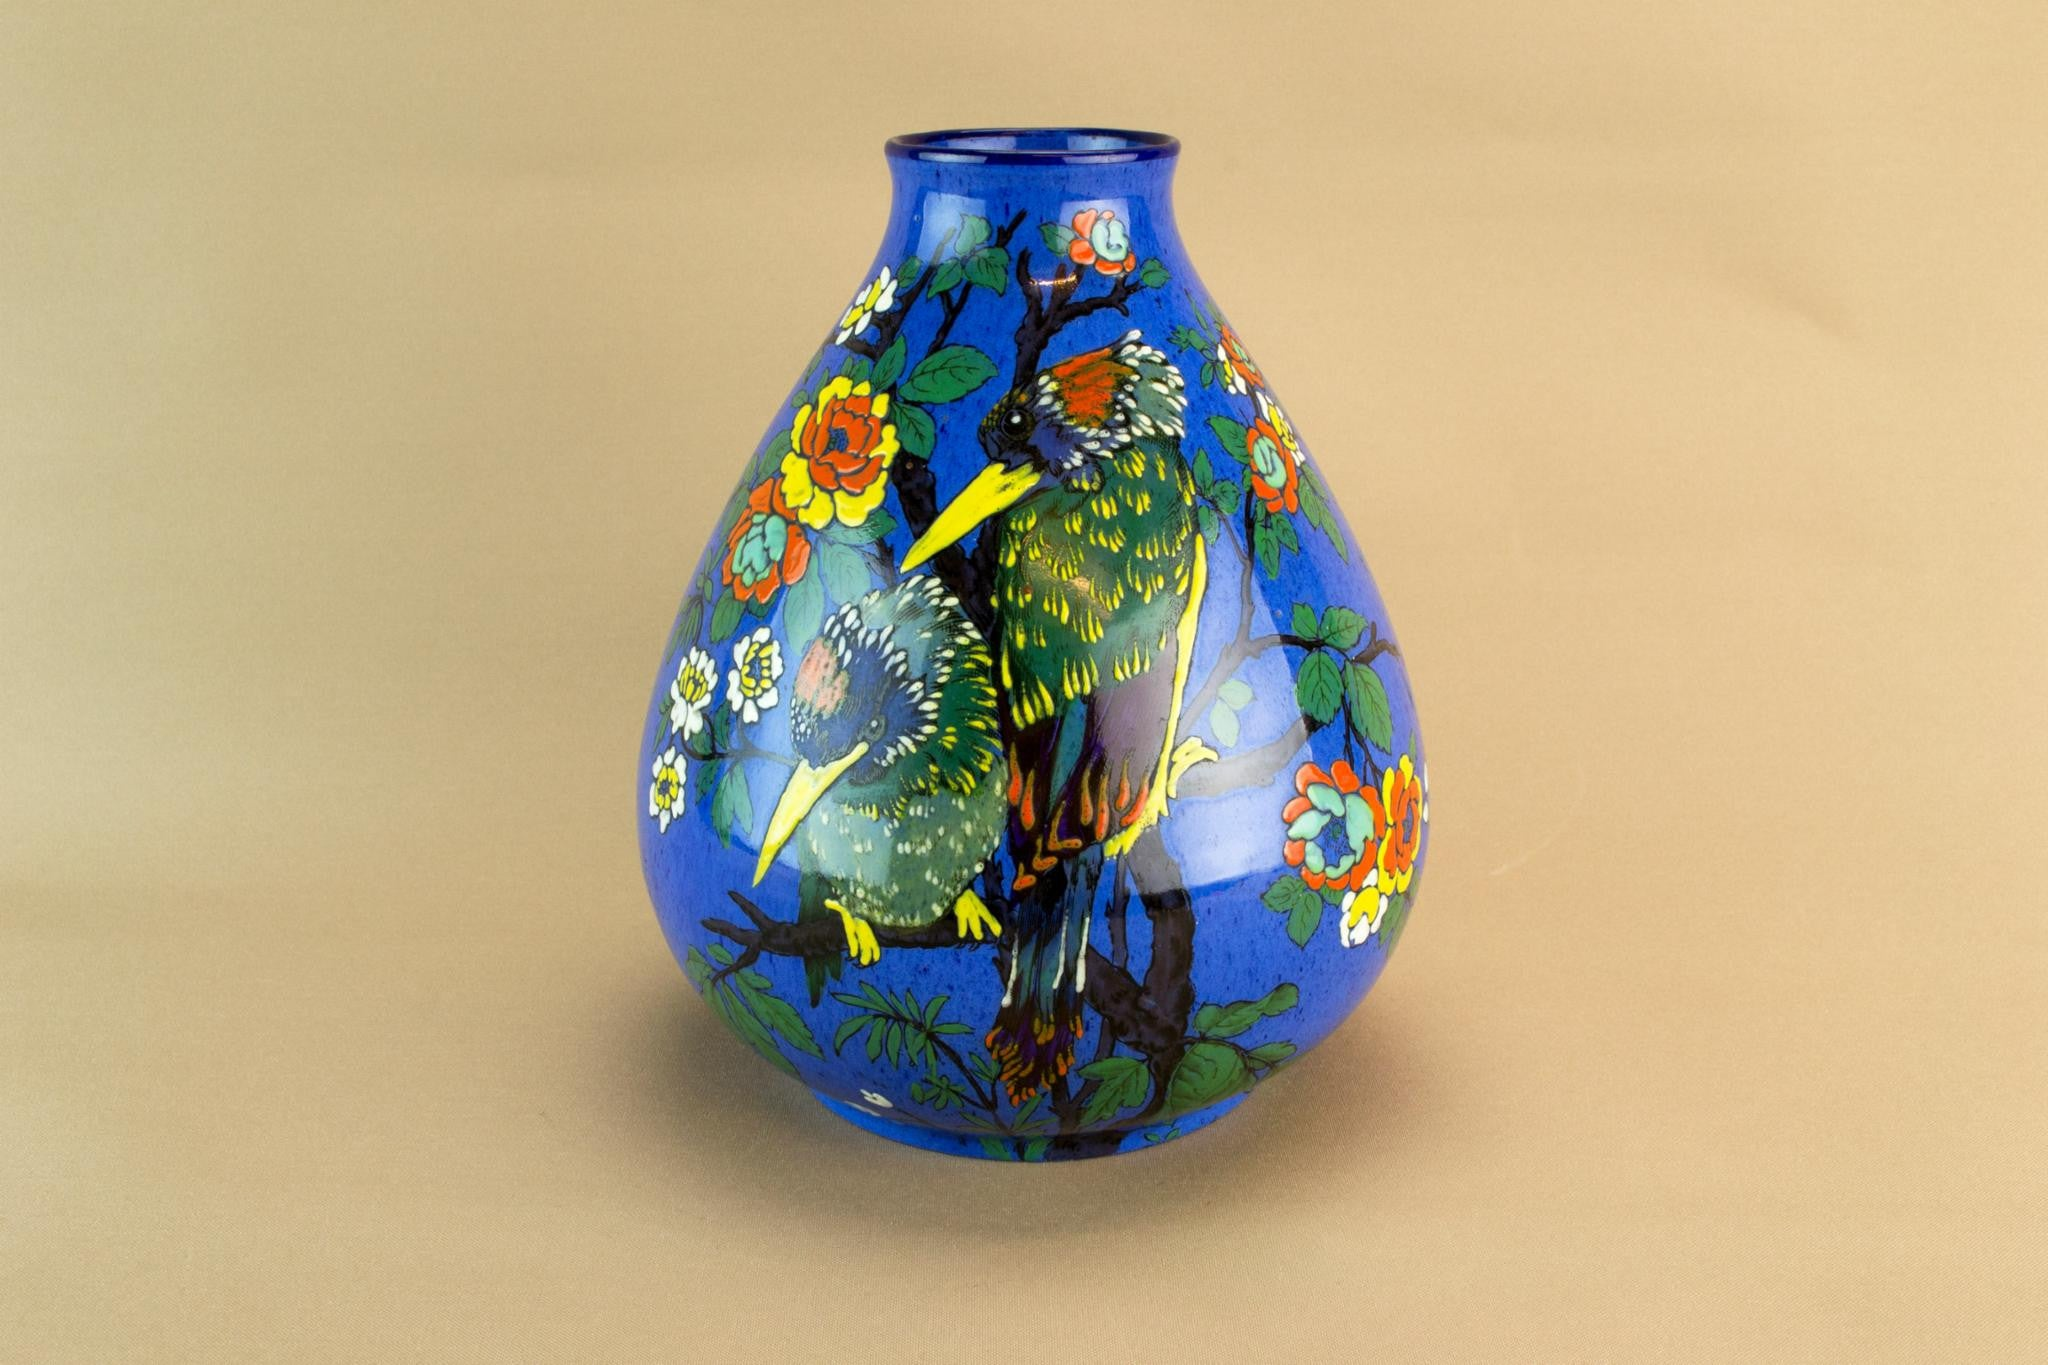 Colourful Art Deco vase, English 1930s